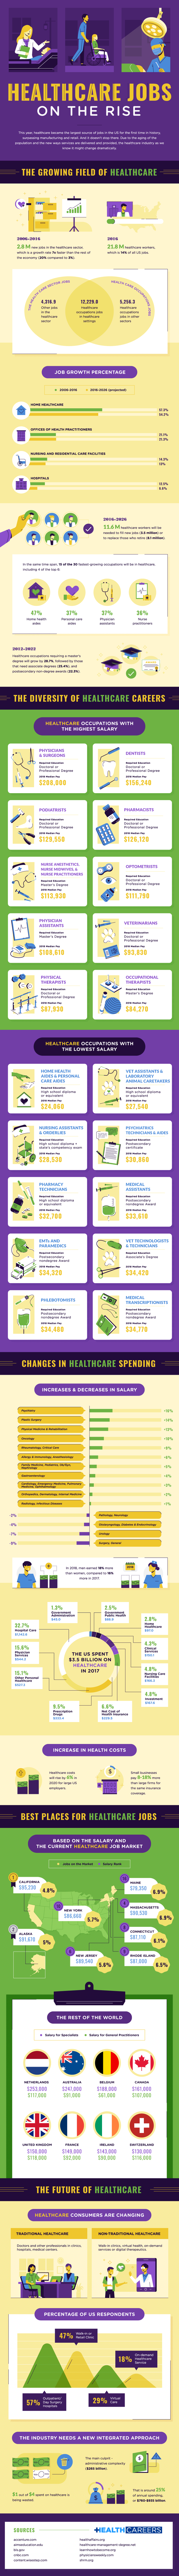 Healthcare Jobs on the Rise (Infographic) - Healthcare Statistics